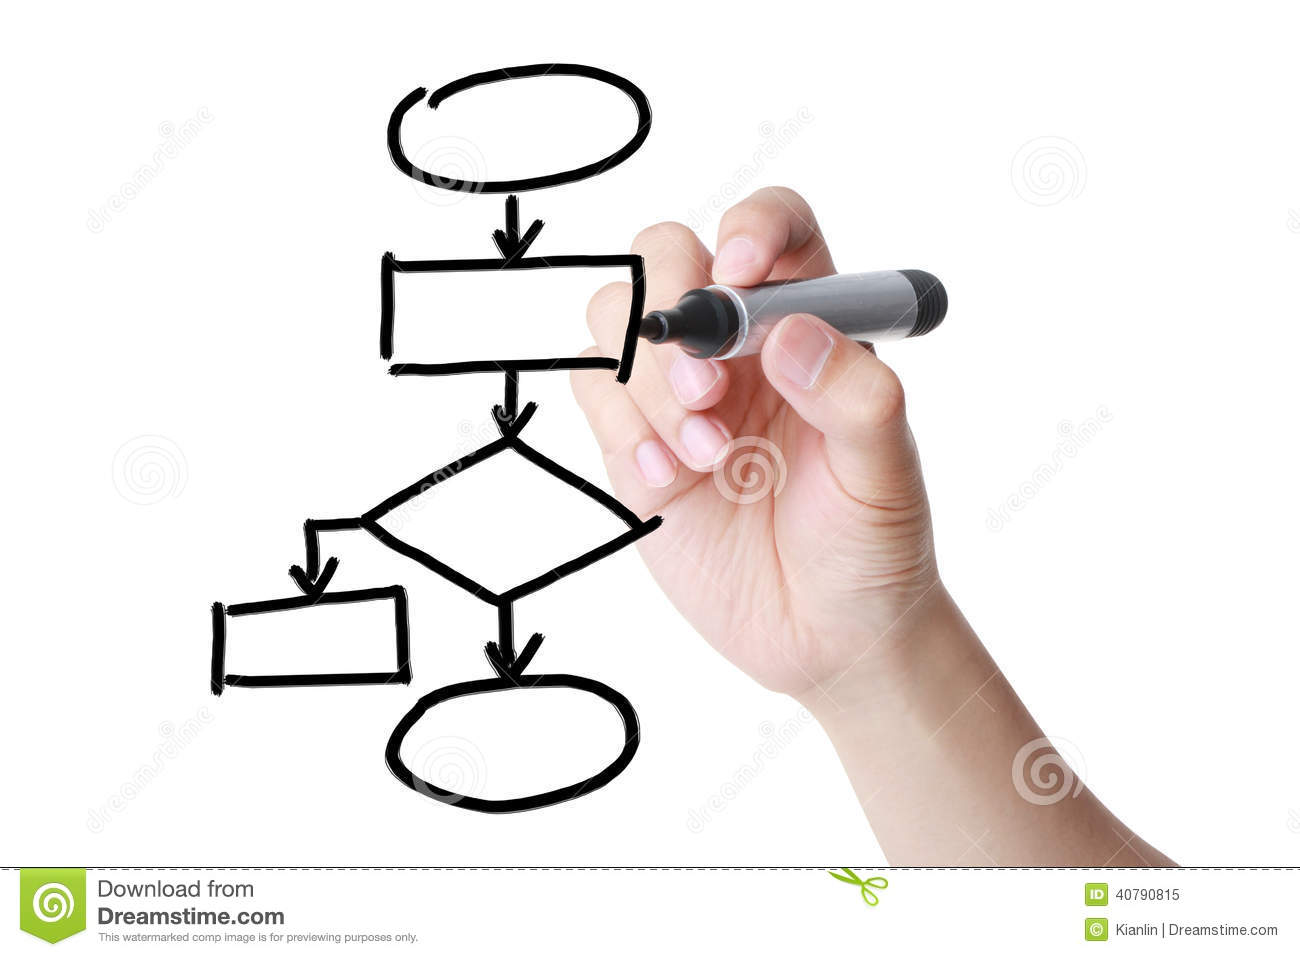 drawing a flowchart stock image image of diagram person 40790815 drawing flowchart hand writing black marker transparent wipe board 40790815 royalty free - Draw Flow